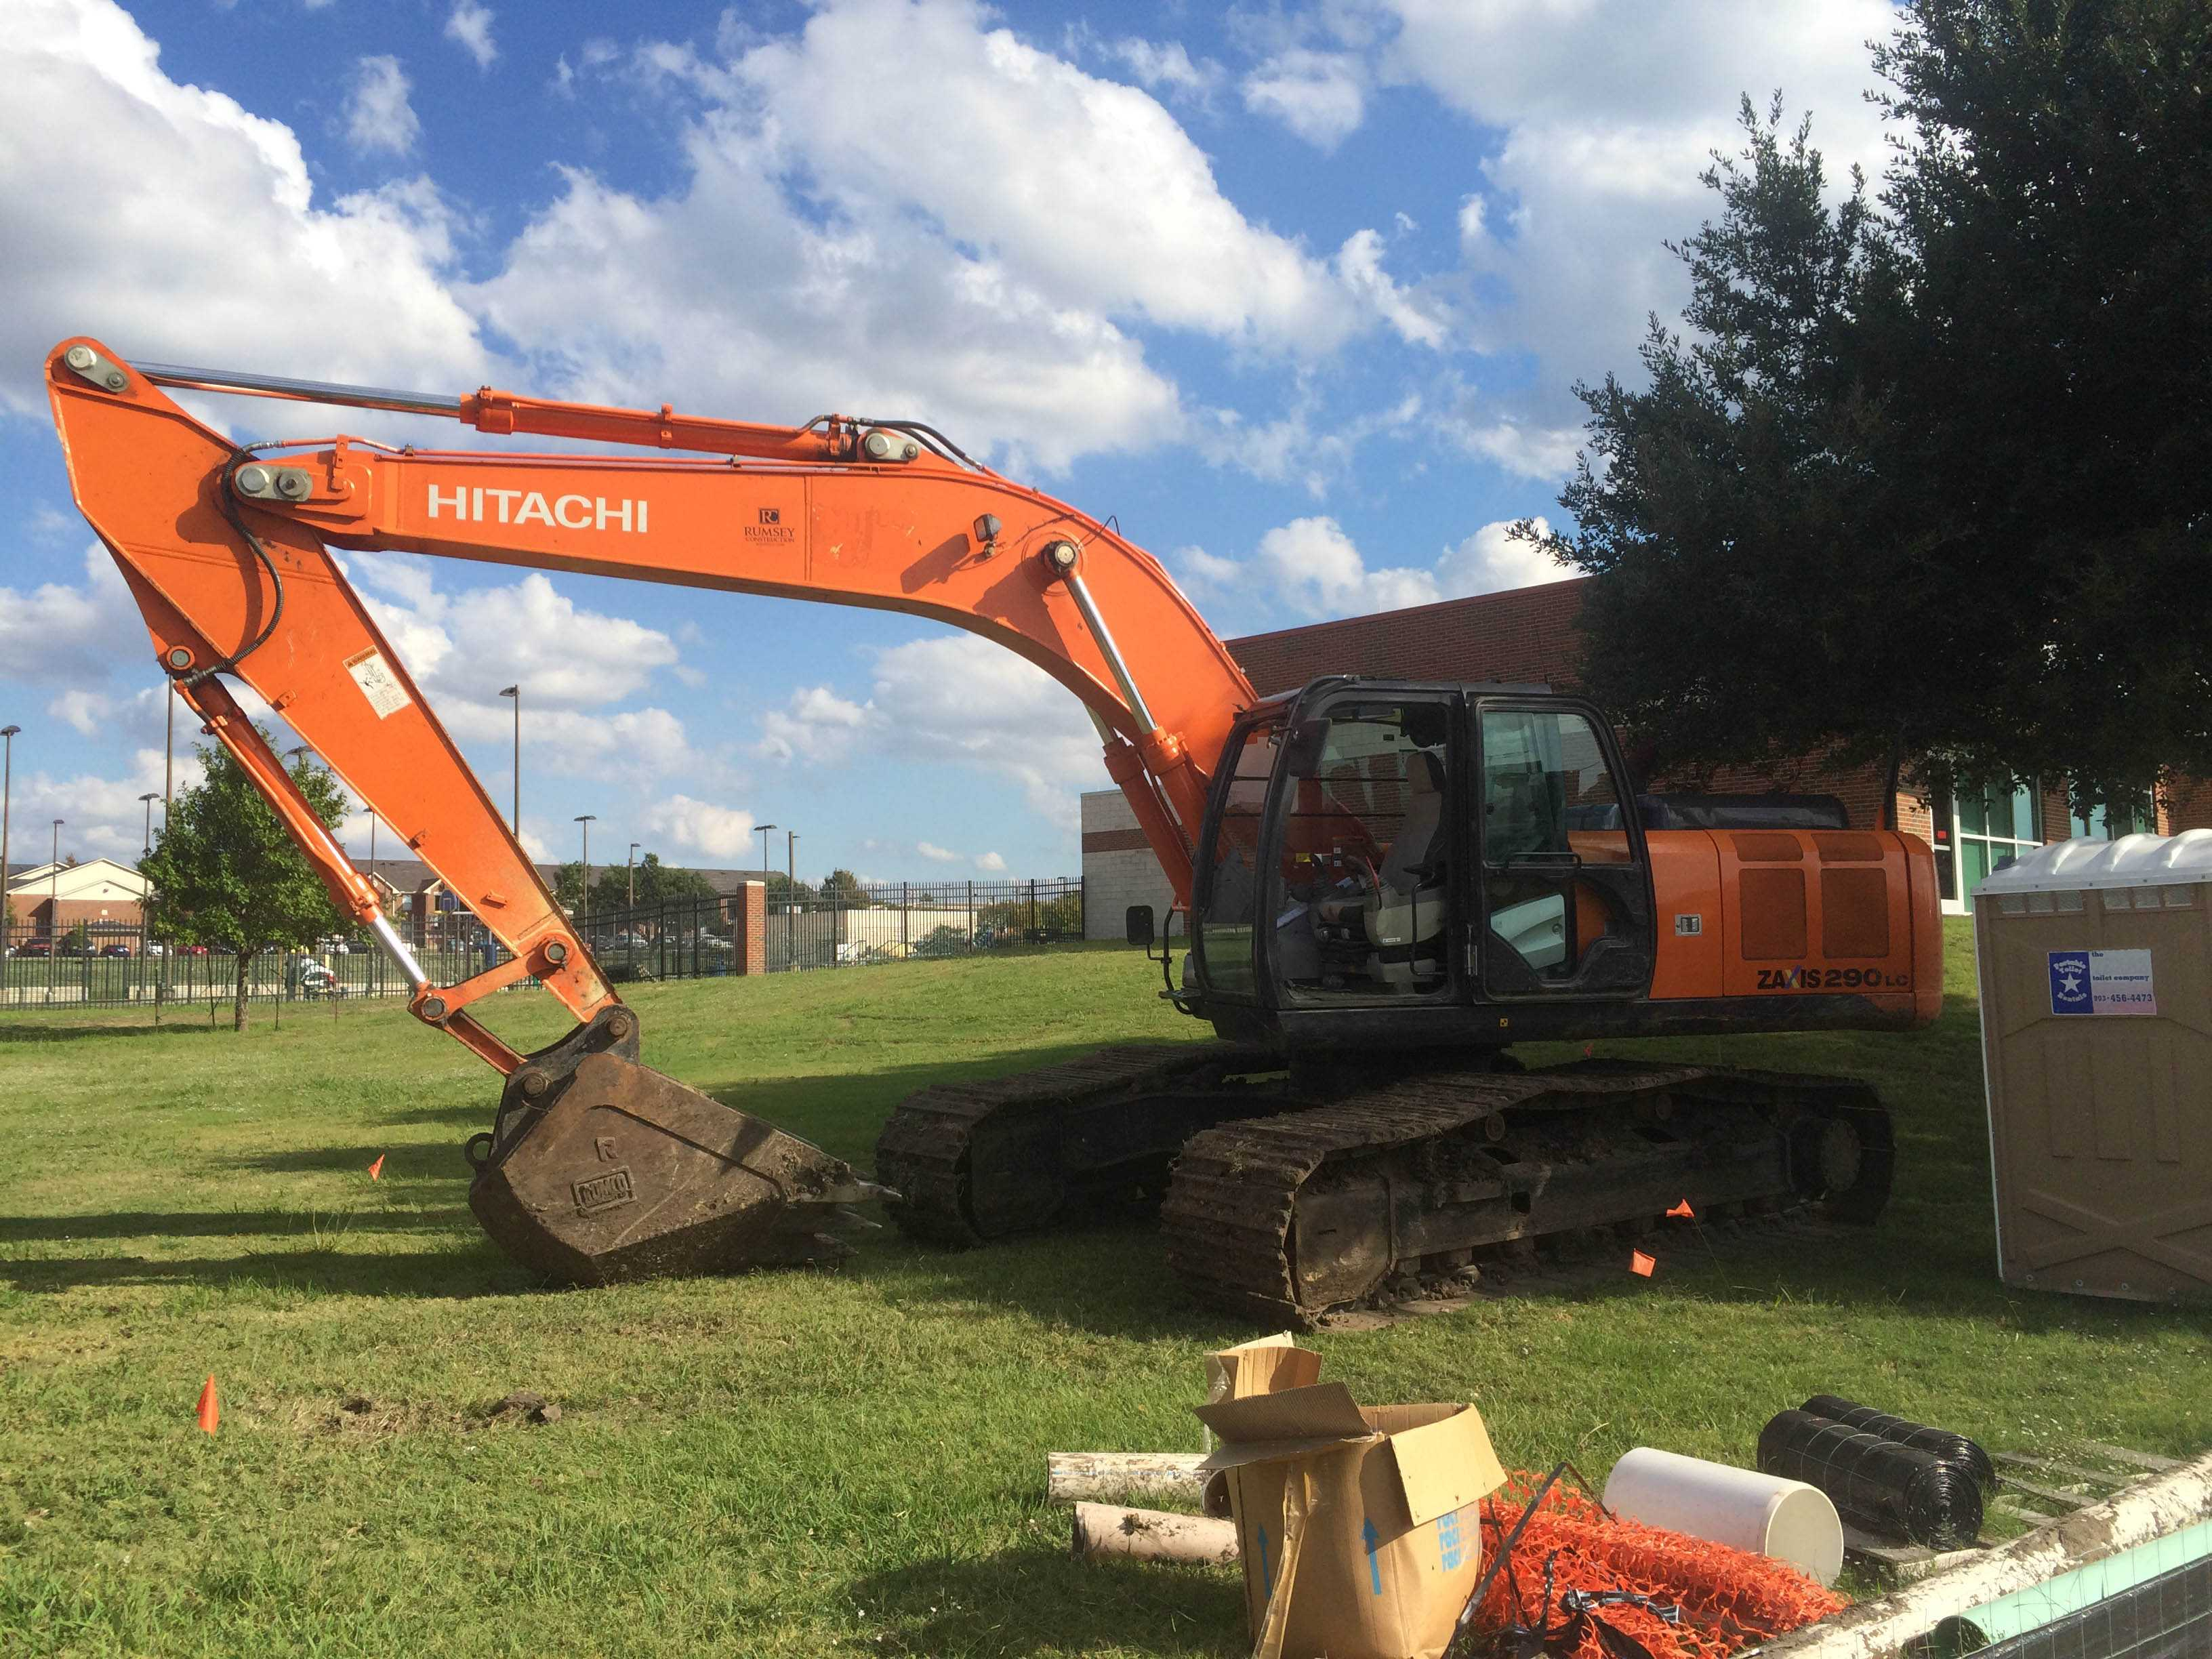 The excavator being operated when the water mane was broken